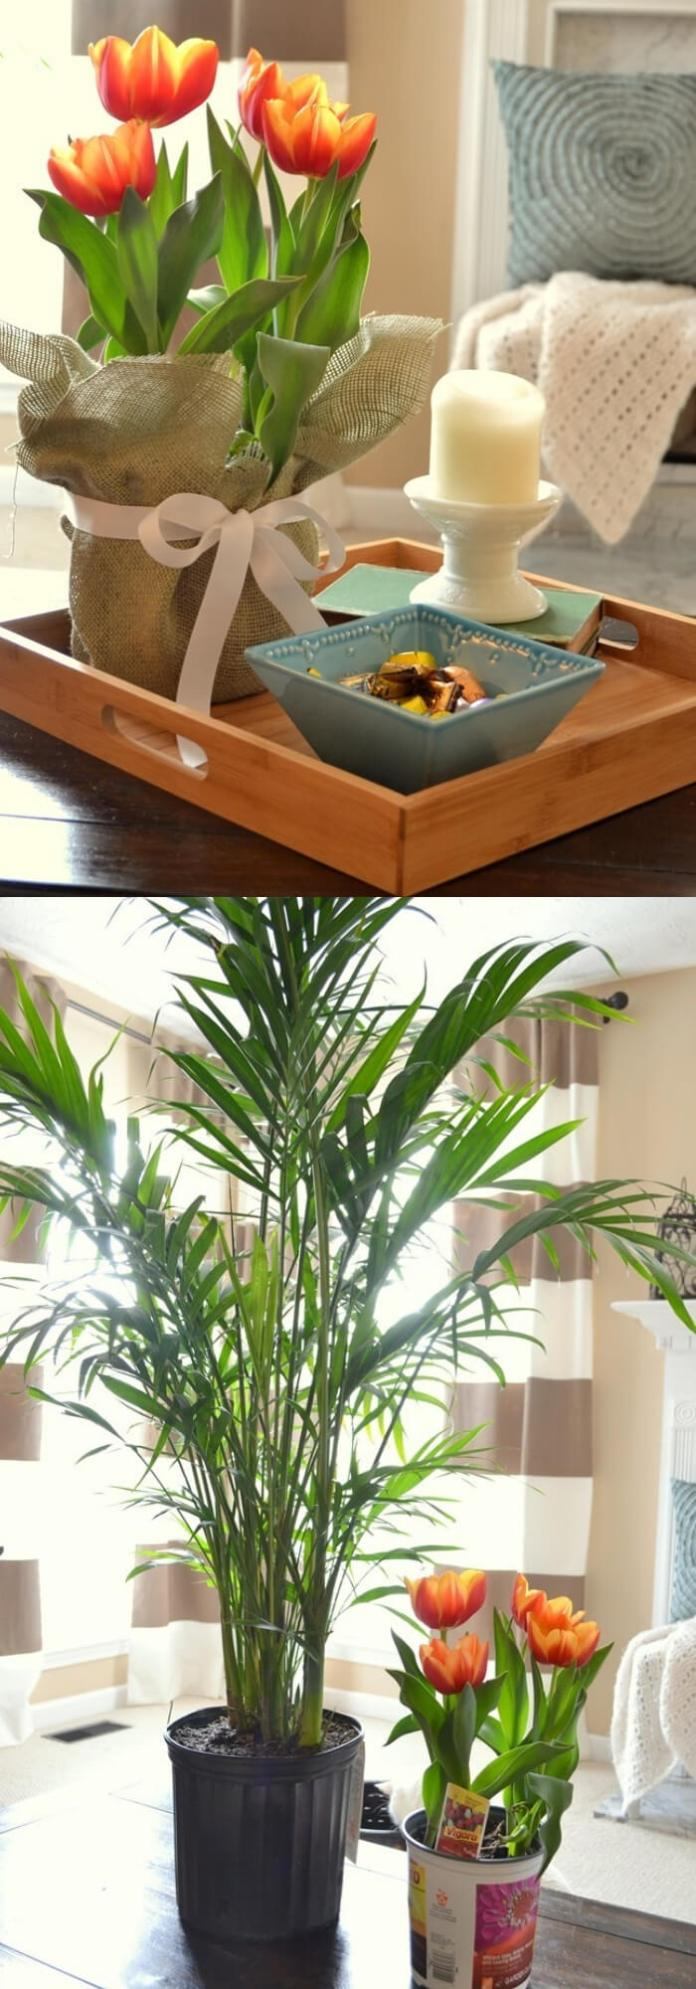 Bringing in Spring in the Living Room | Spring Spruce-Up - Quick, Cheap Home Décor Ideas | FarmFoodFamily.com